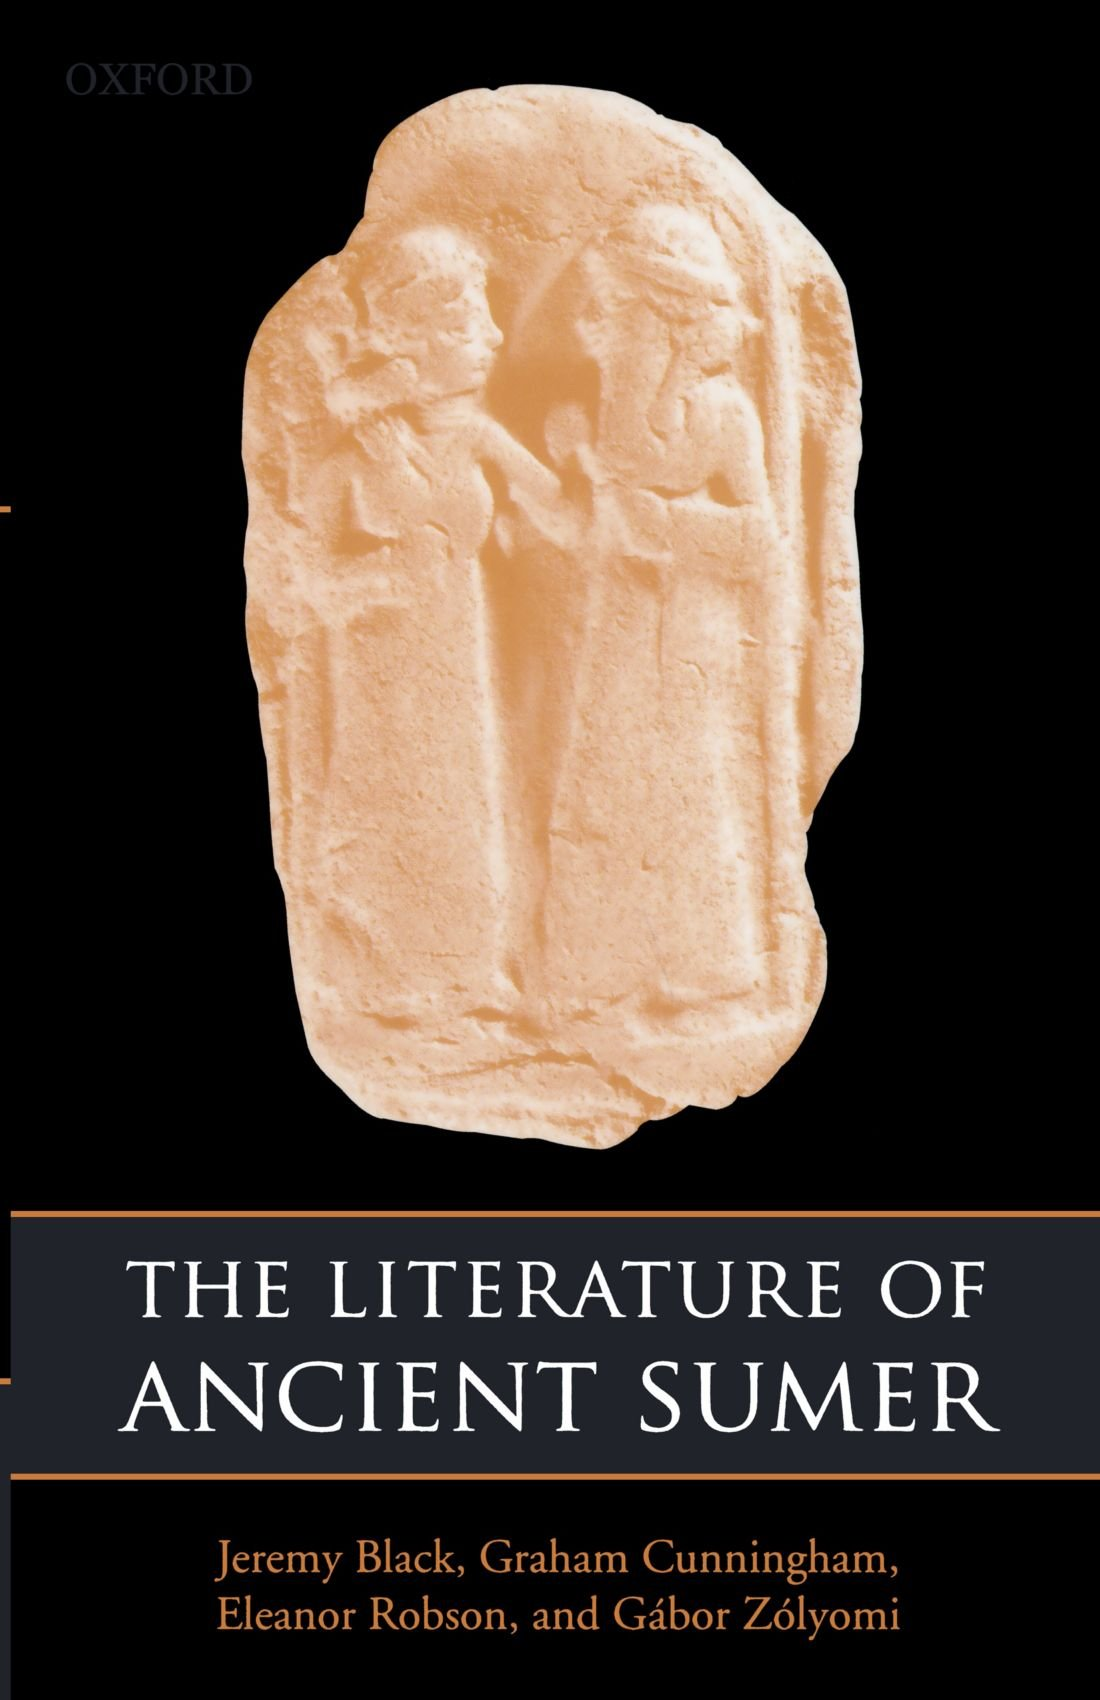 BLACK J. et alii The Literature of Ancient Sumer. Oxford: Oxford University Press, 2006, 438 p.